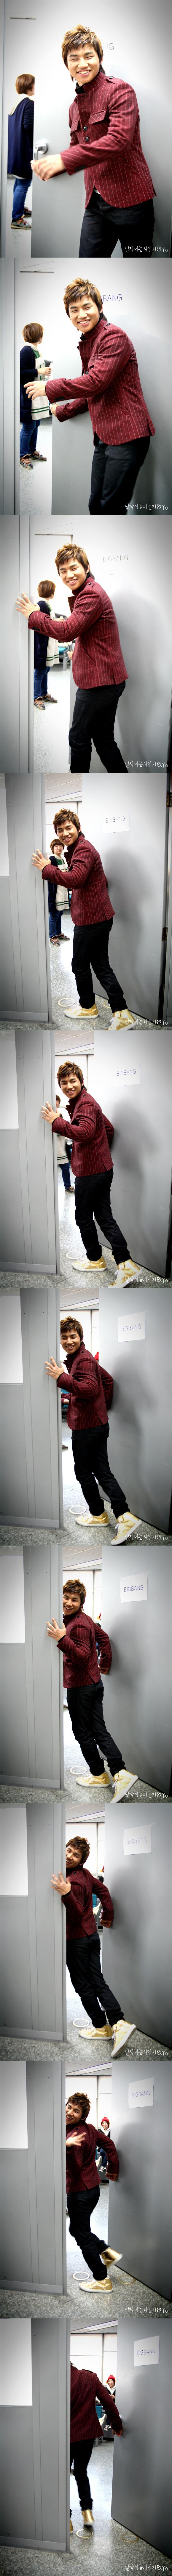 081207 in SBS Inkigayo Backstage 大成 02